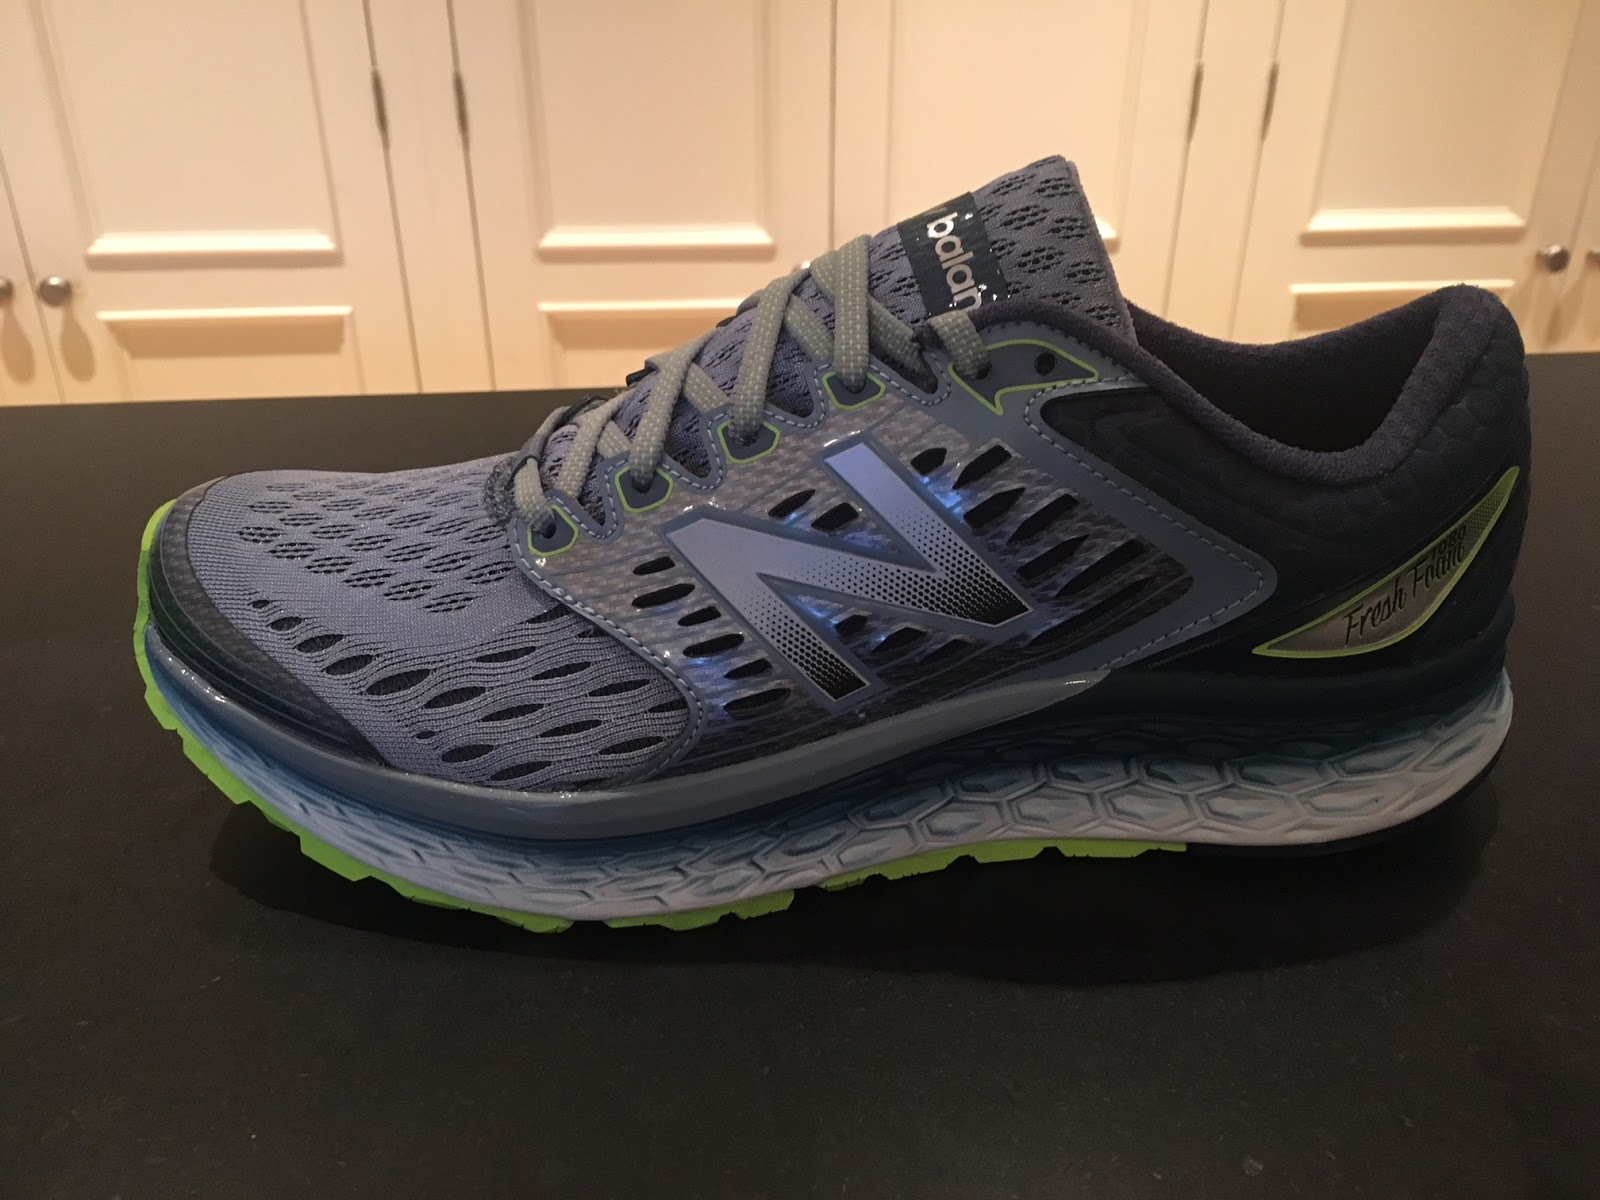 new styles e1feb 7dacc new balance 1080 running shoes (for men)